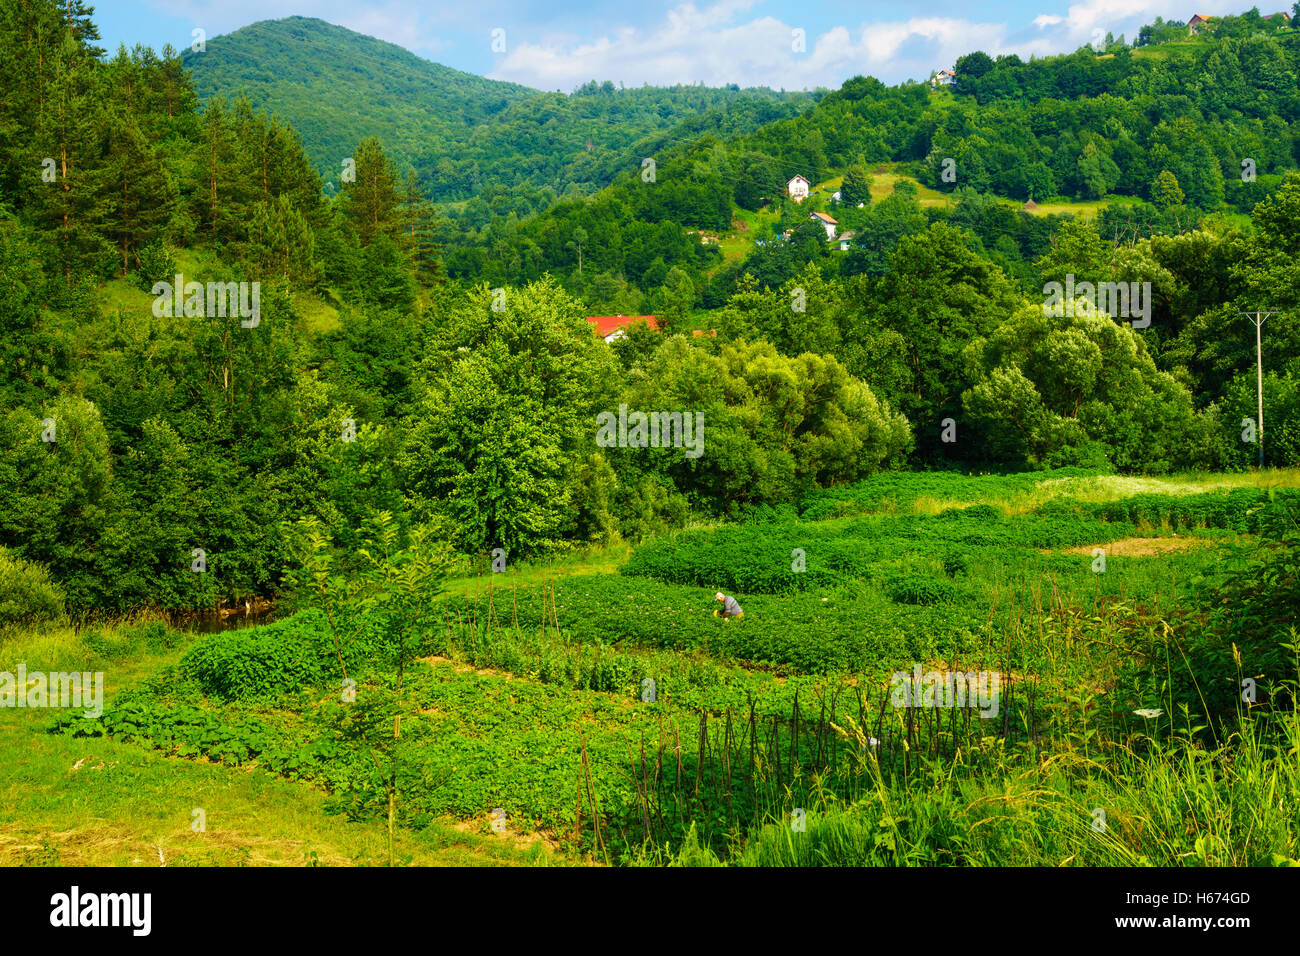 LUKAVAC, BIH - JULY 04, 2015: View and countryside, with a farmer, along the M18 road in the Republika Srpska, Bosnia - Stock Image